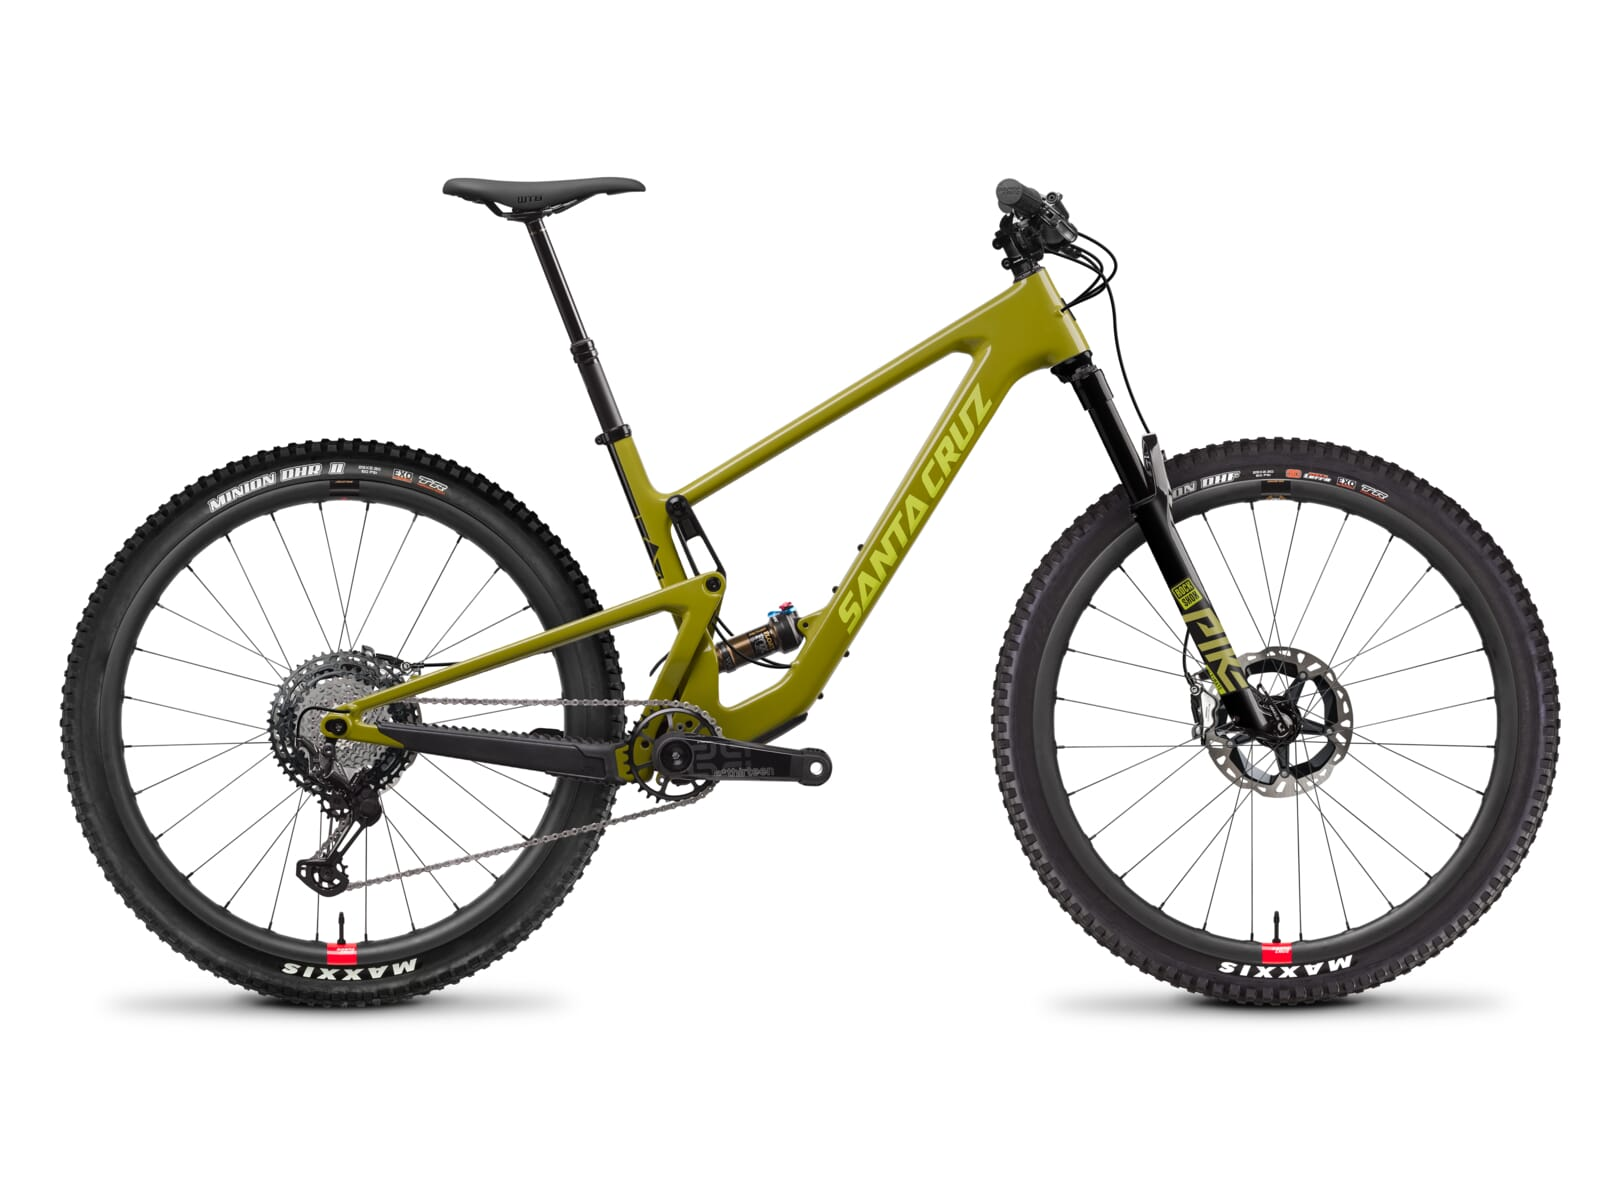 MY20_Tallboy_CC_XTR_RSV_Yellow.jpg